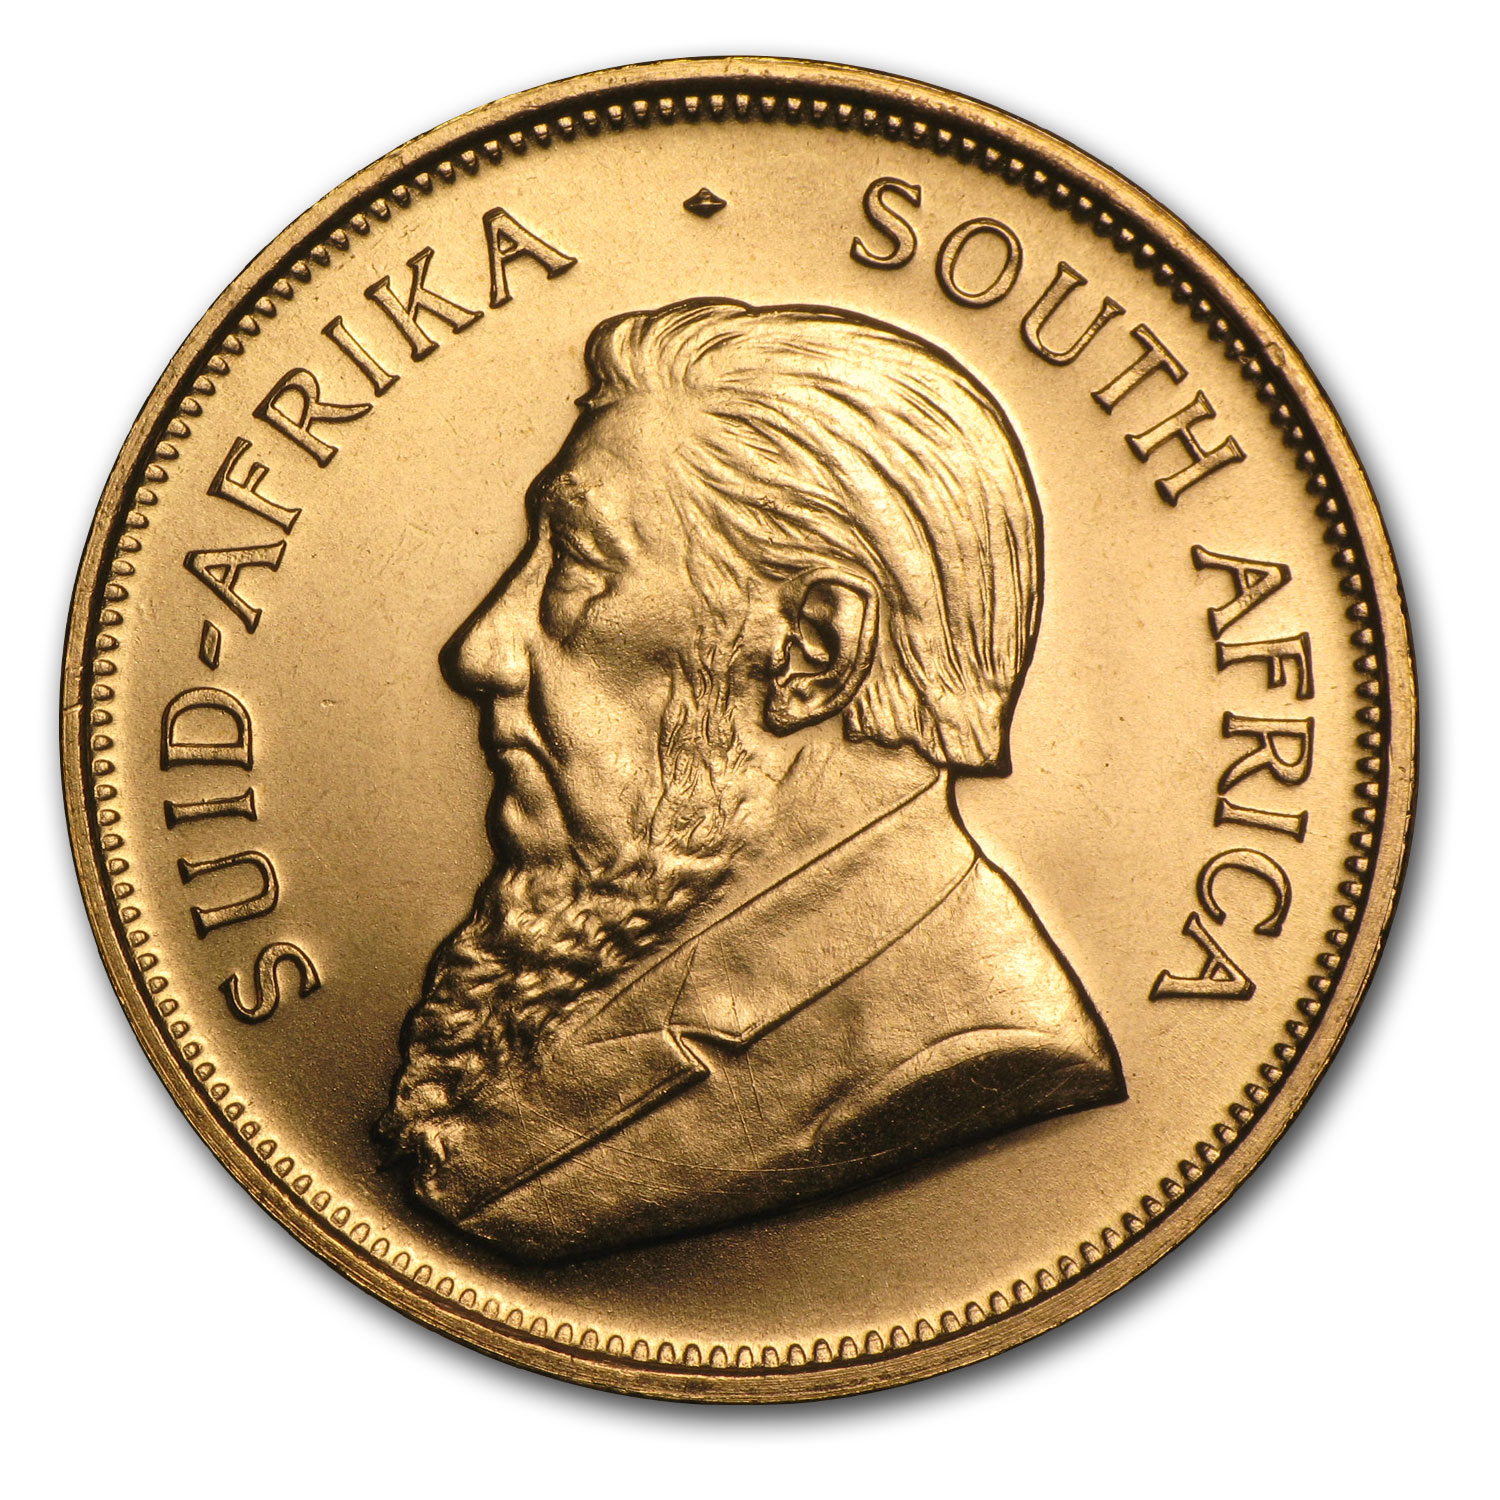 1973 South Africa 1 Oz Gold Krugerrand 1 Oz Gold